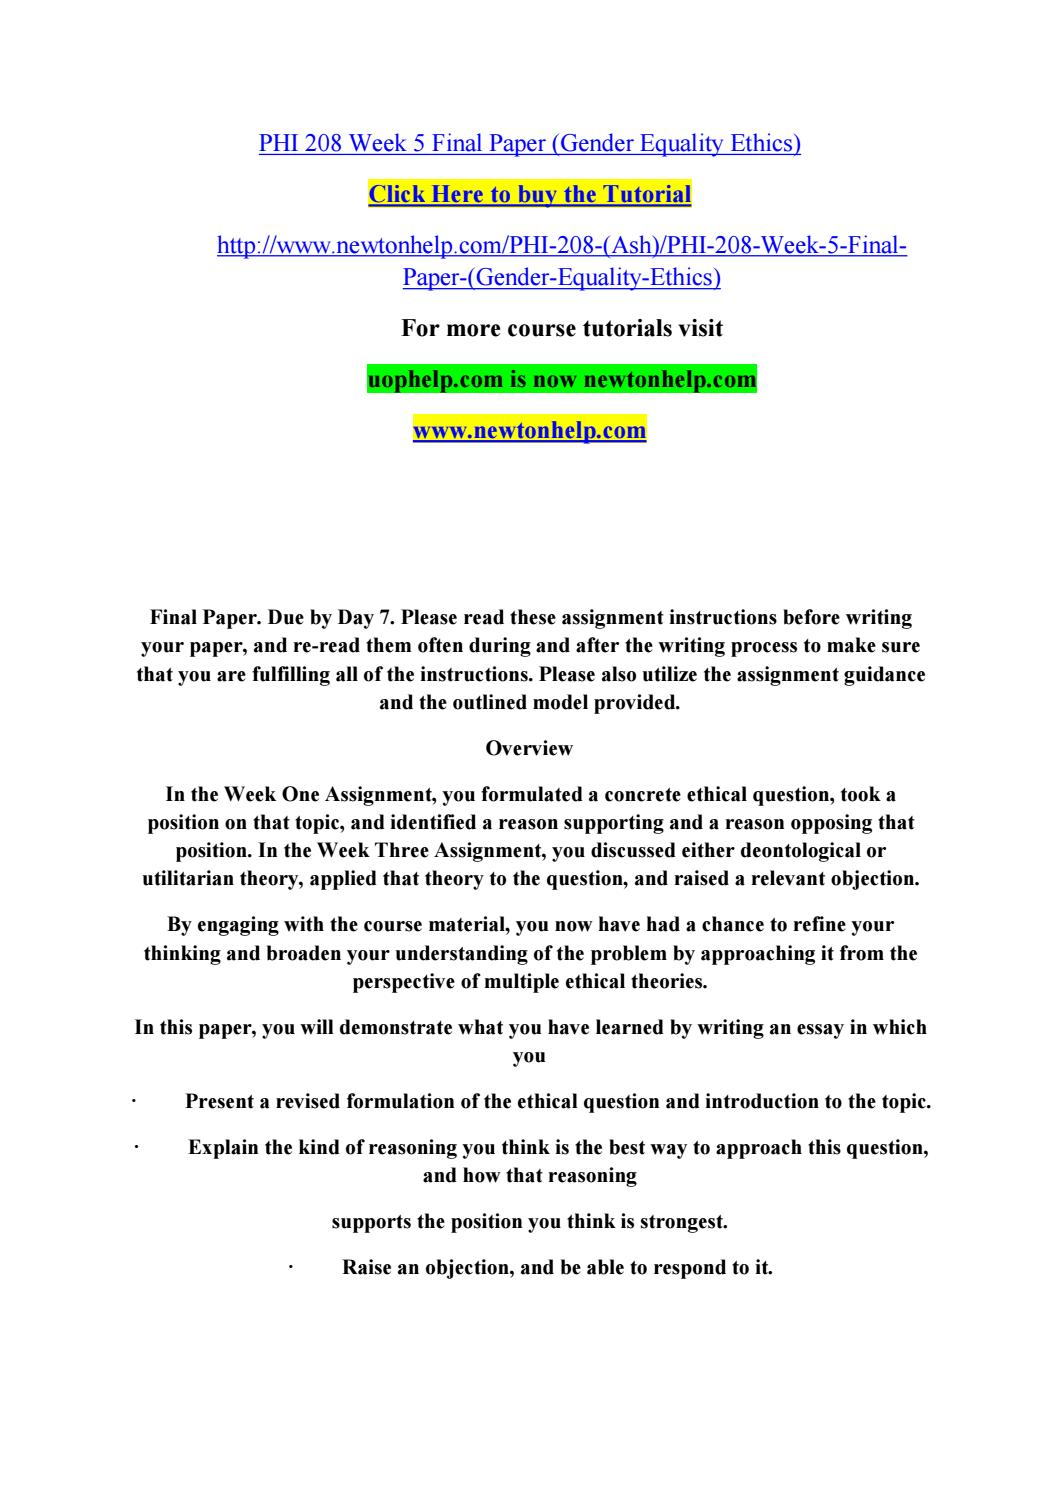 High School Admission Essay Examples  Essay On Religion And Science also Example Of English Essay Phi  Week  Final Paper Gender Equality Ethics By  Www Oppapers Com Essays